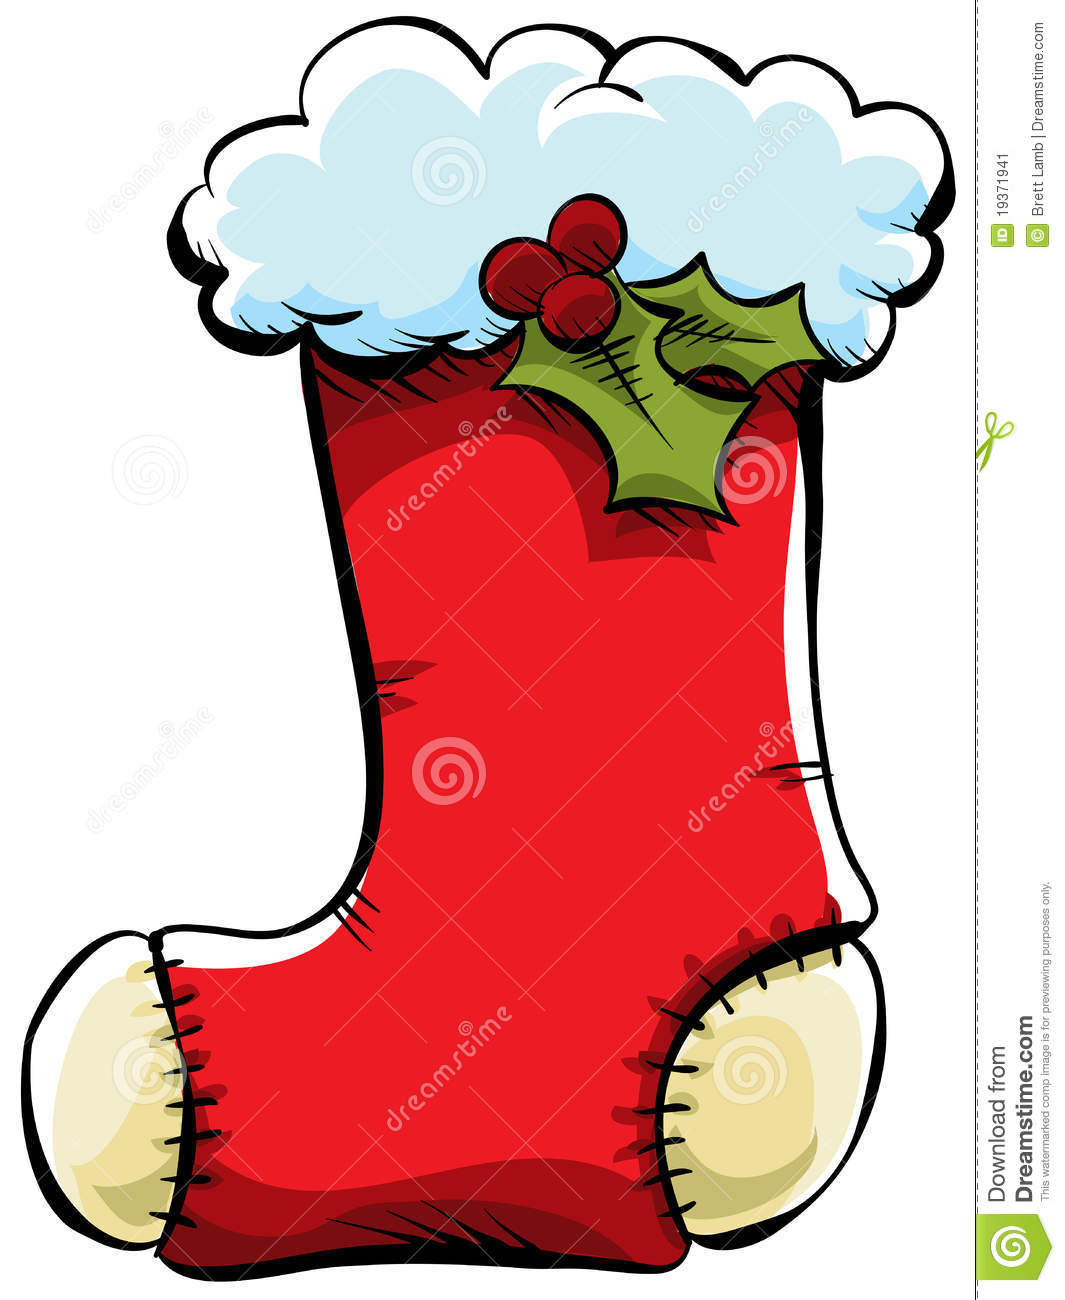 Displaying (19) Gallery Images For Christmas Stocking Cartoon...